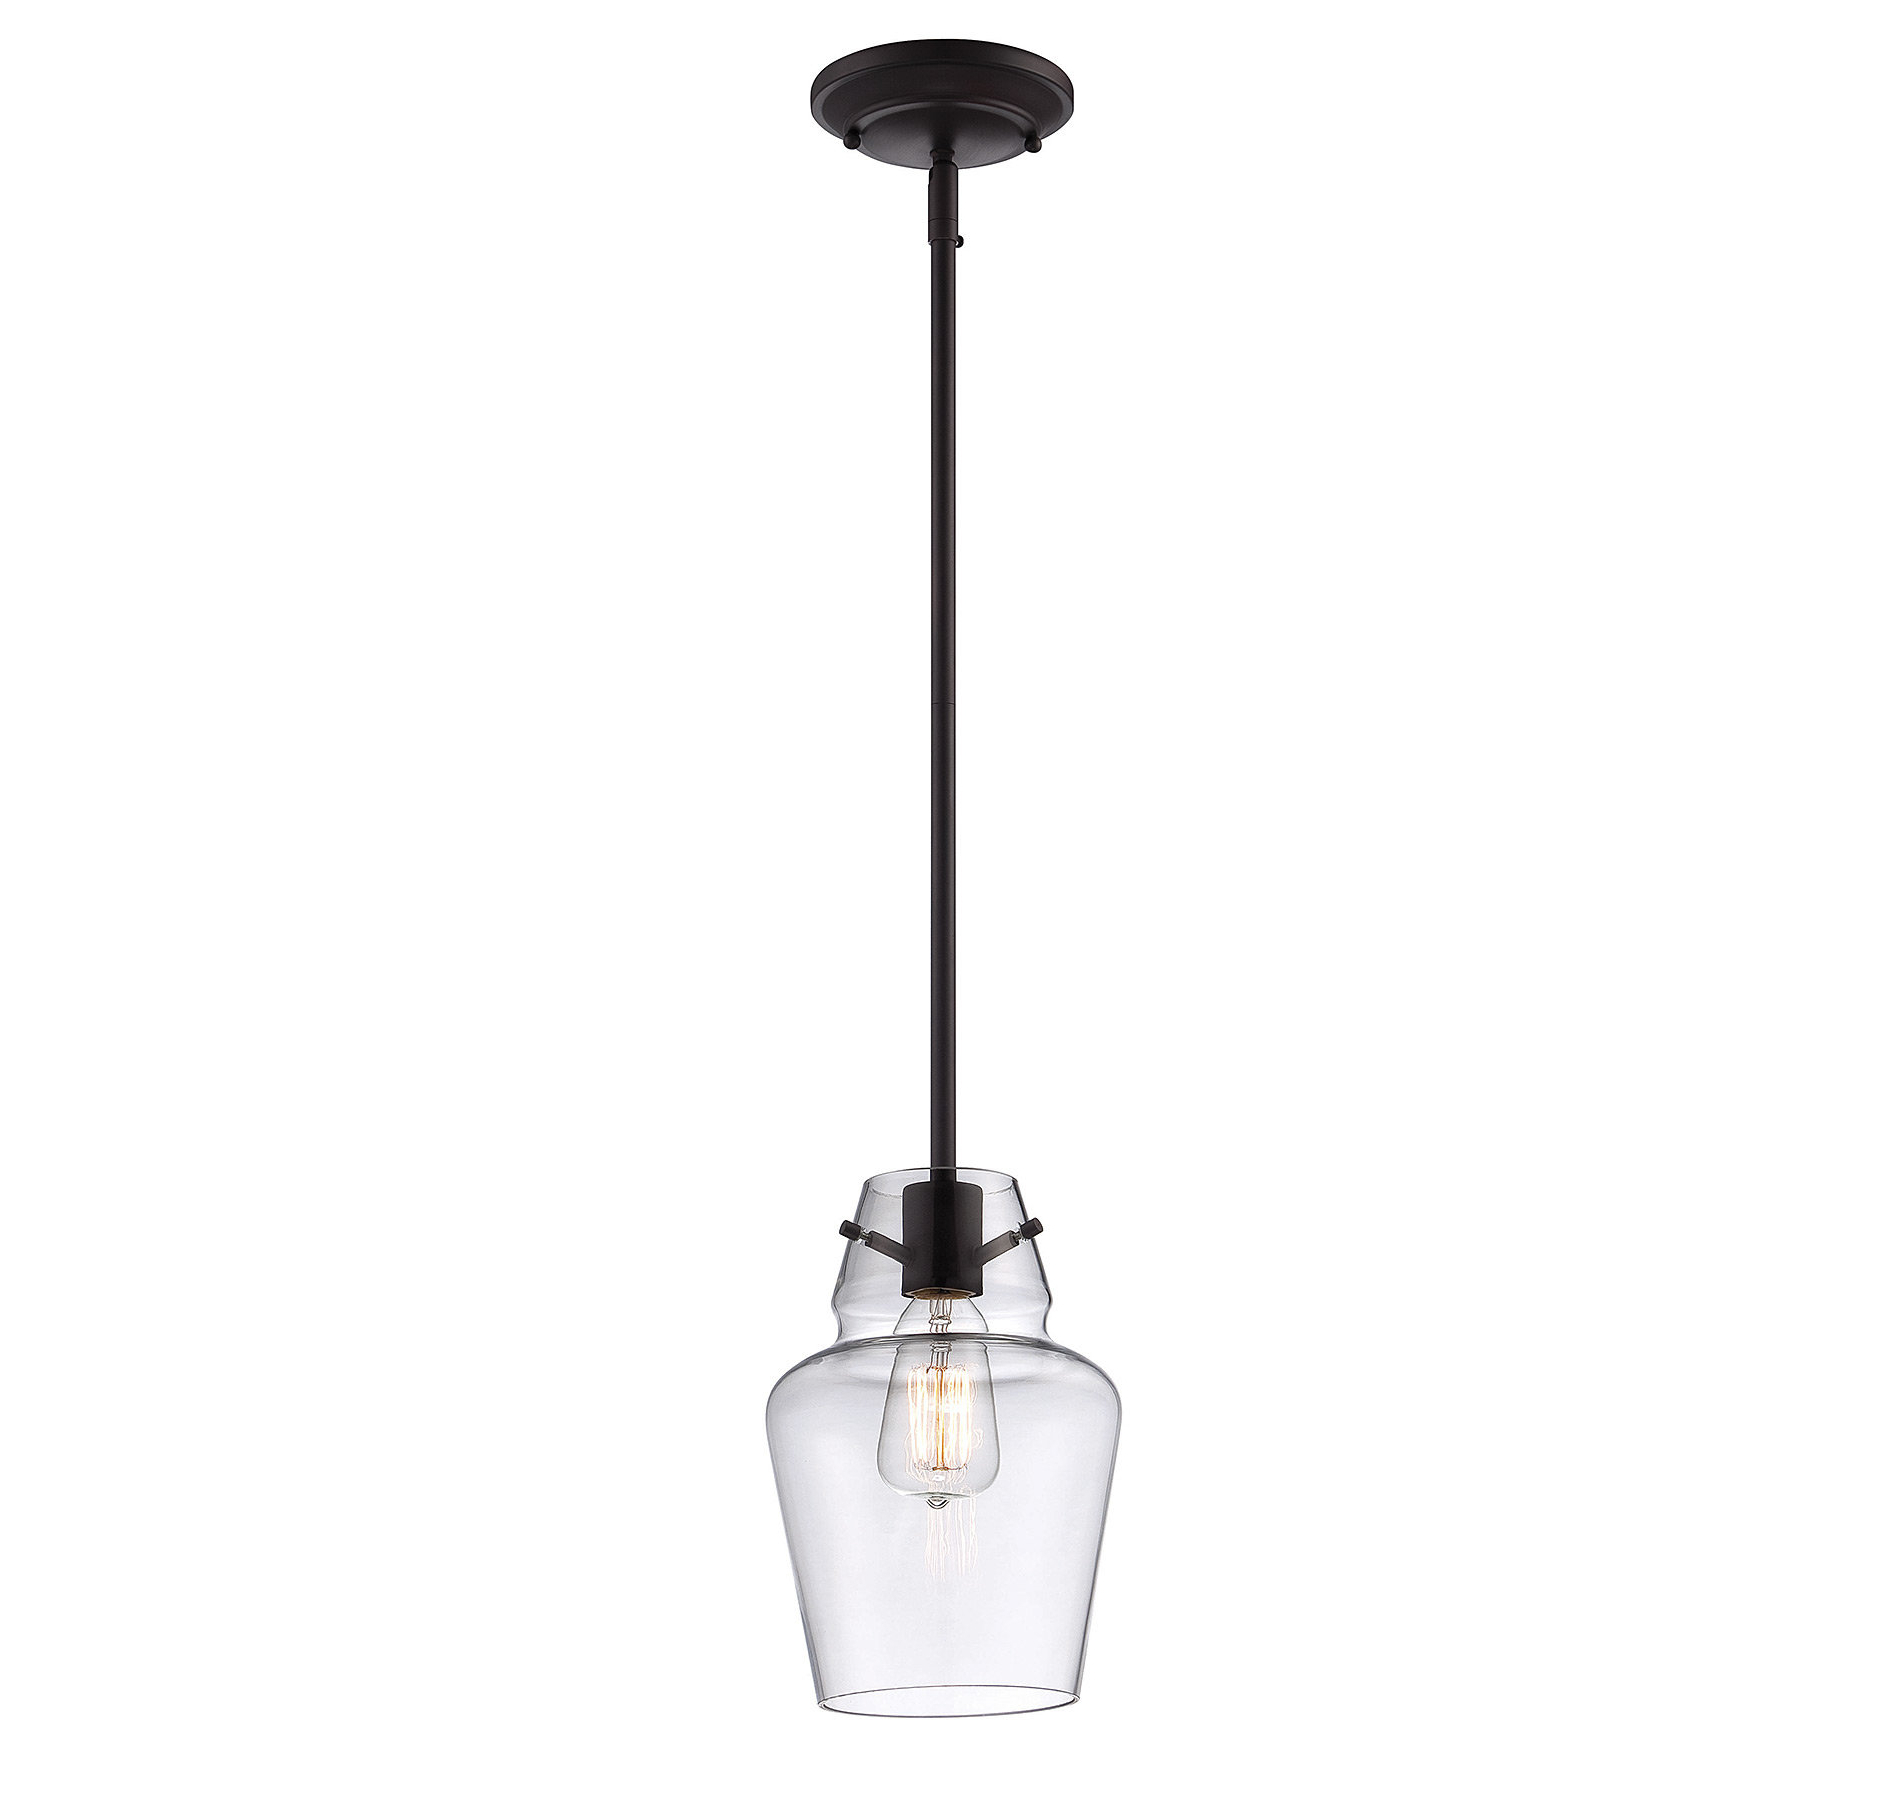 Roslindale 1 Light Single Bell Pendant With Regard To Most Recently Released Sue 1 Light Single Jar Pendants (Gallery 8 of 20)